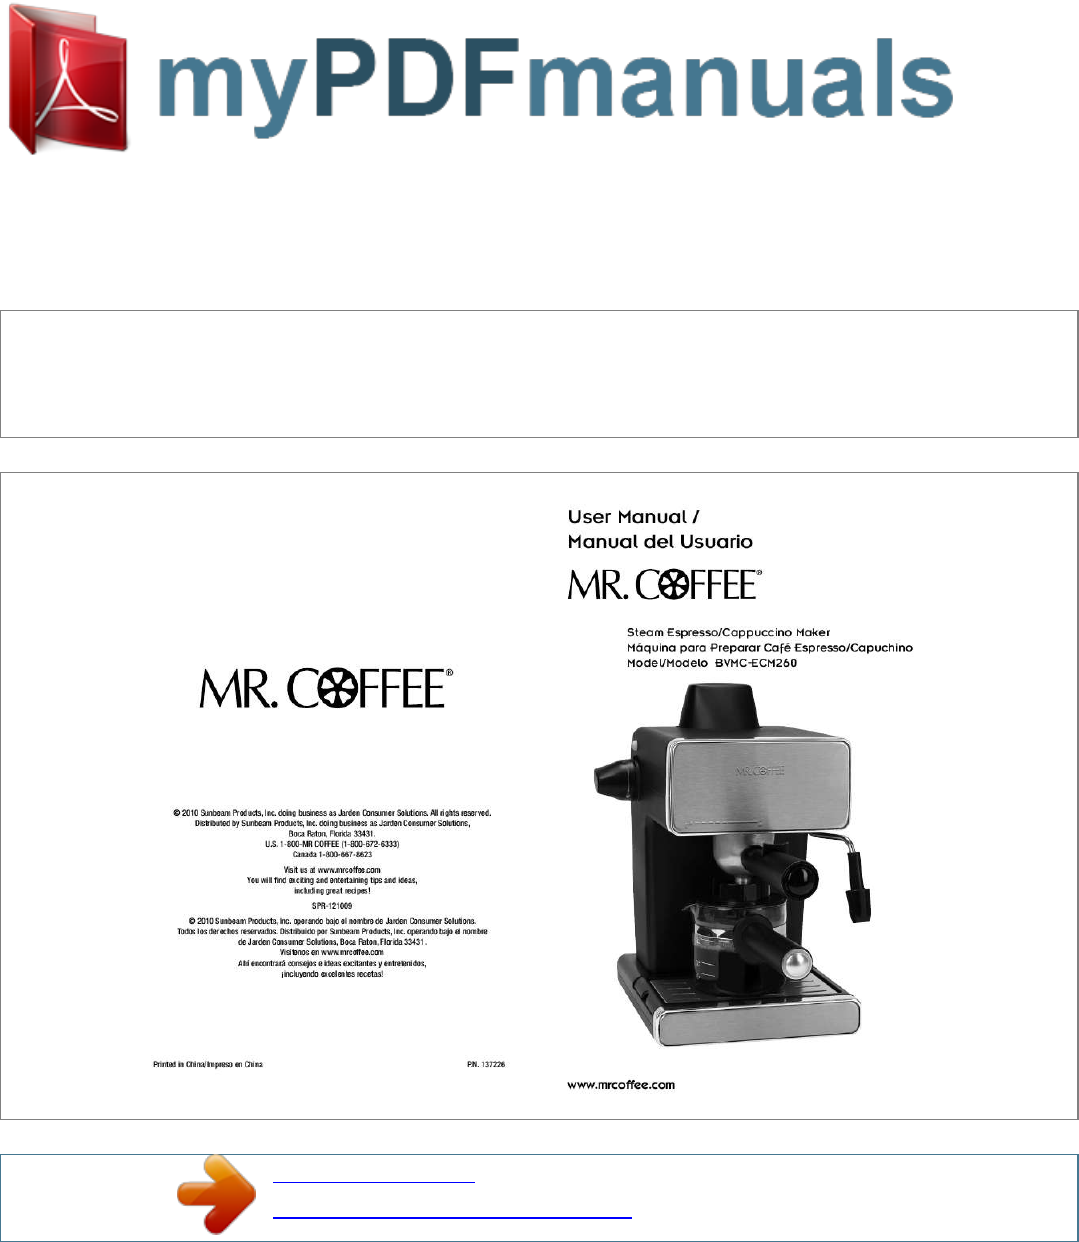 Mr. Coffee Espresso Maker BVMC-ECM260 User Guide ManualsOnline.com